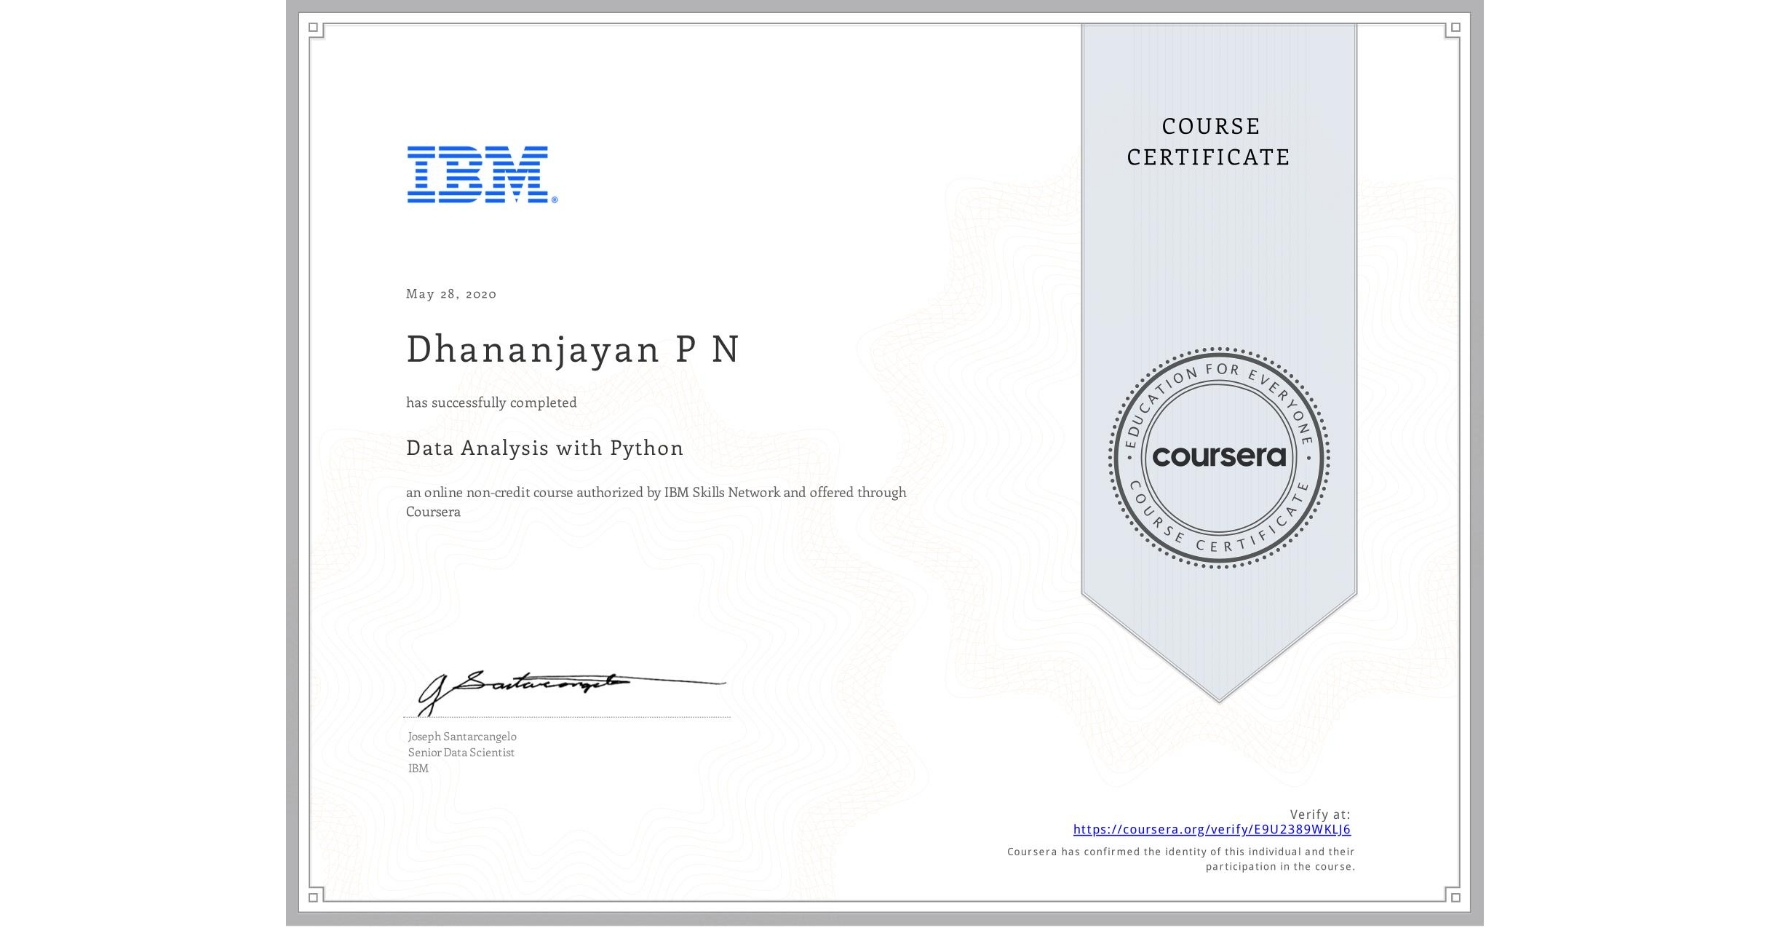 View certificate for Dhananjayan P N, Data Analysis with Python, an online non-credit course authorized by IBM and offered through Coursera